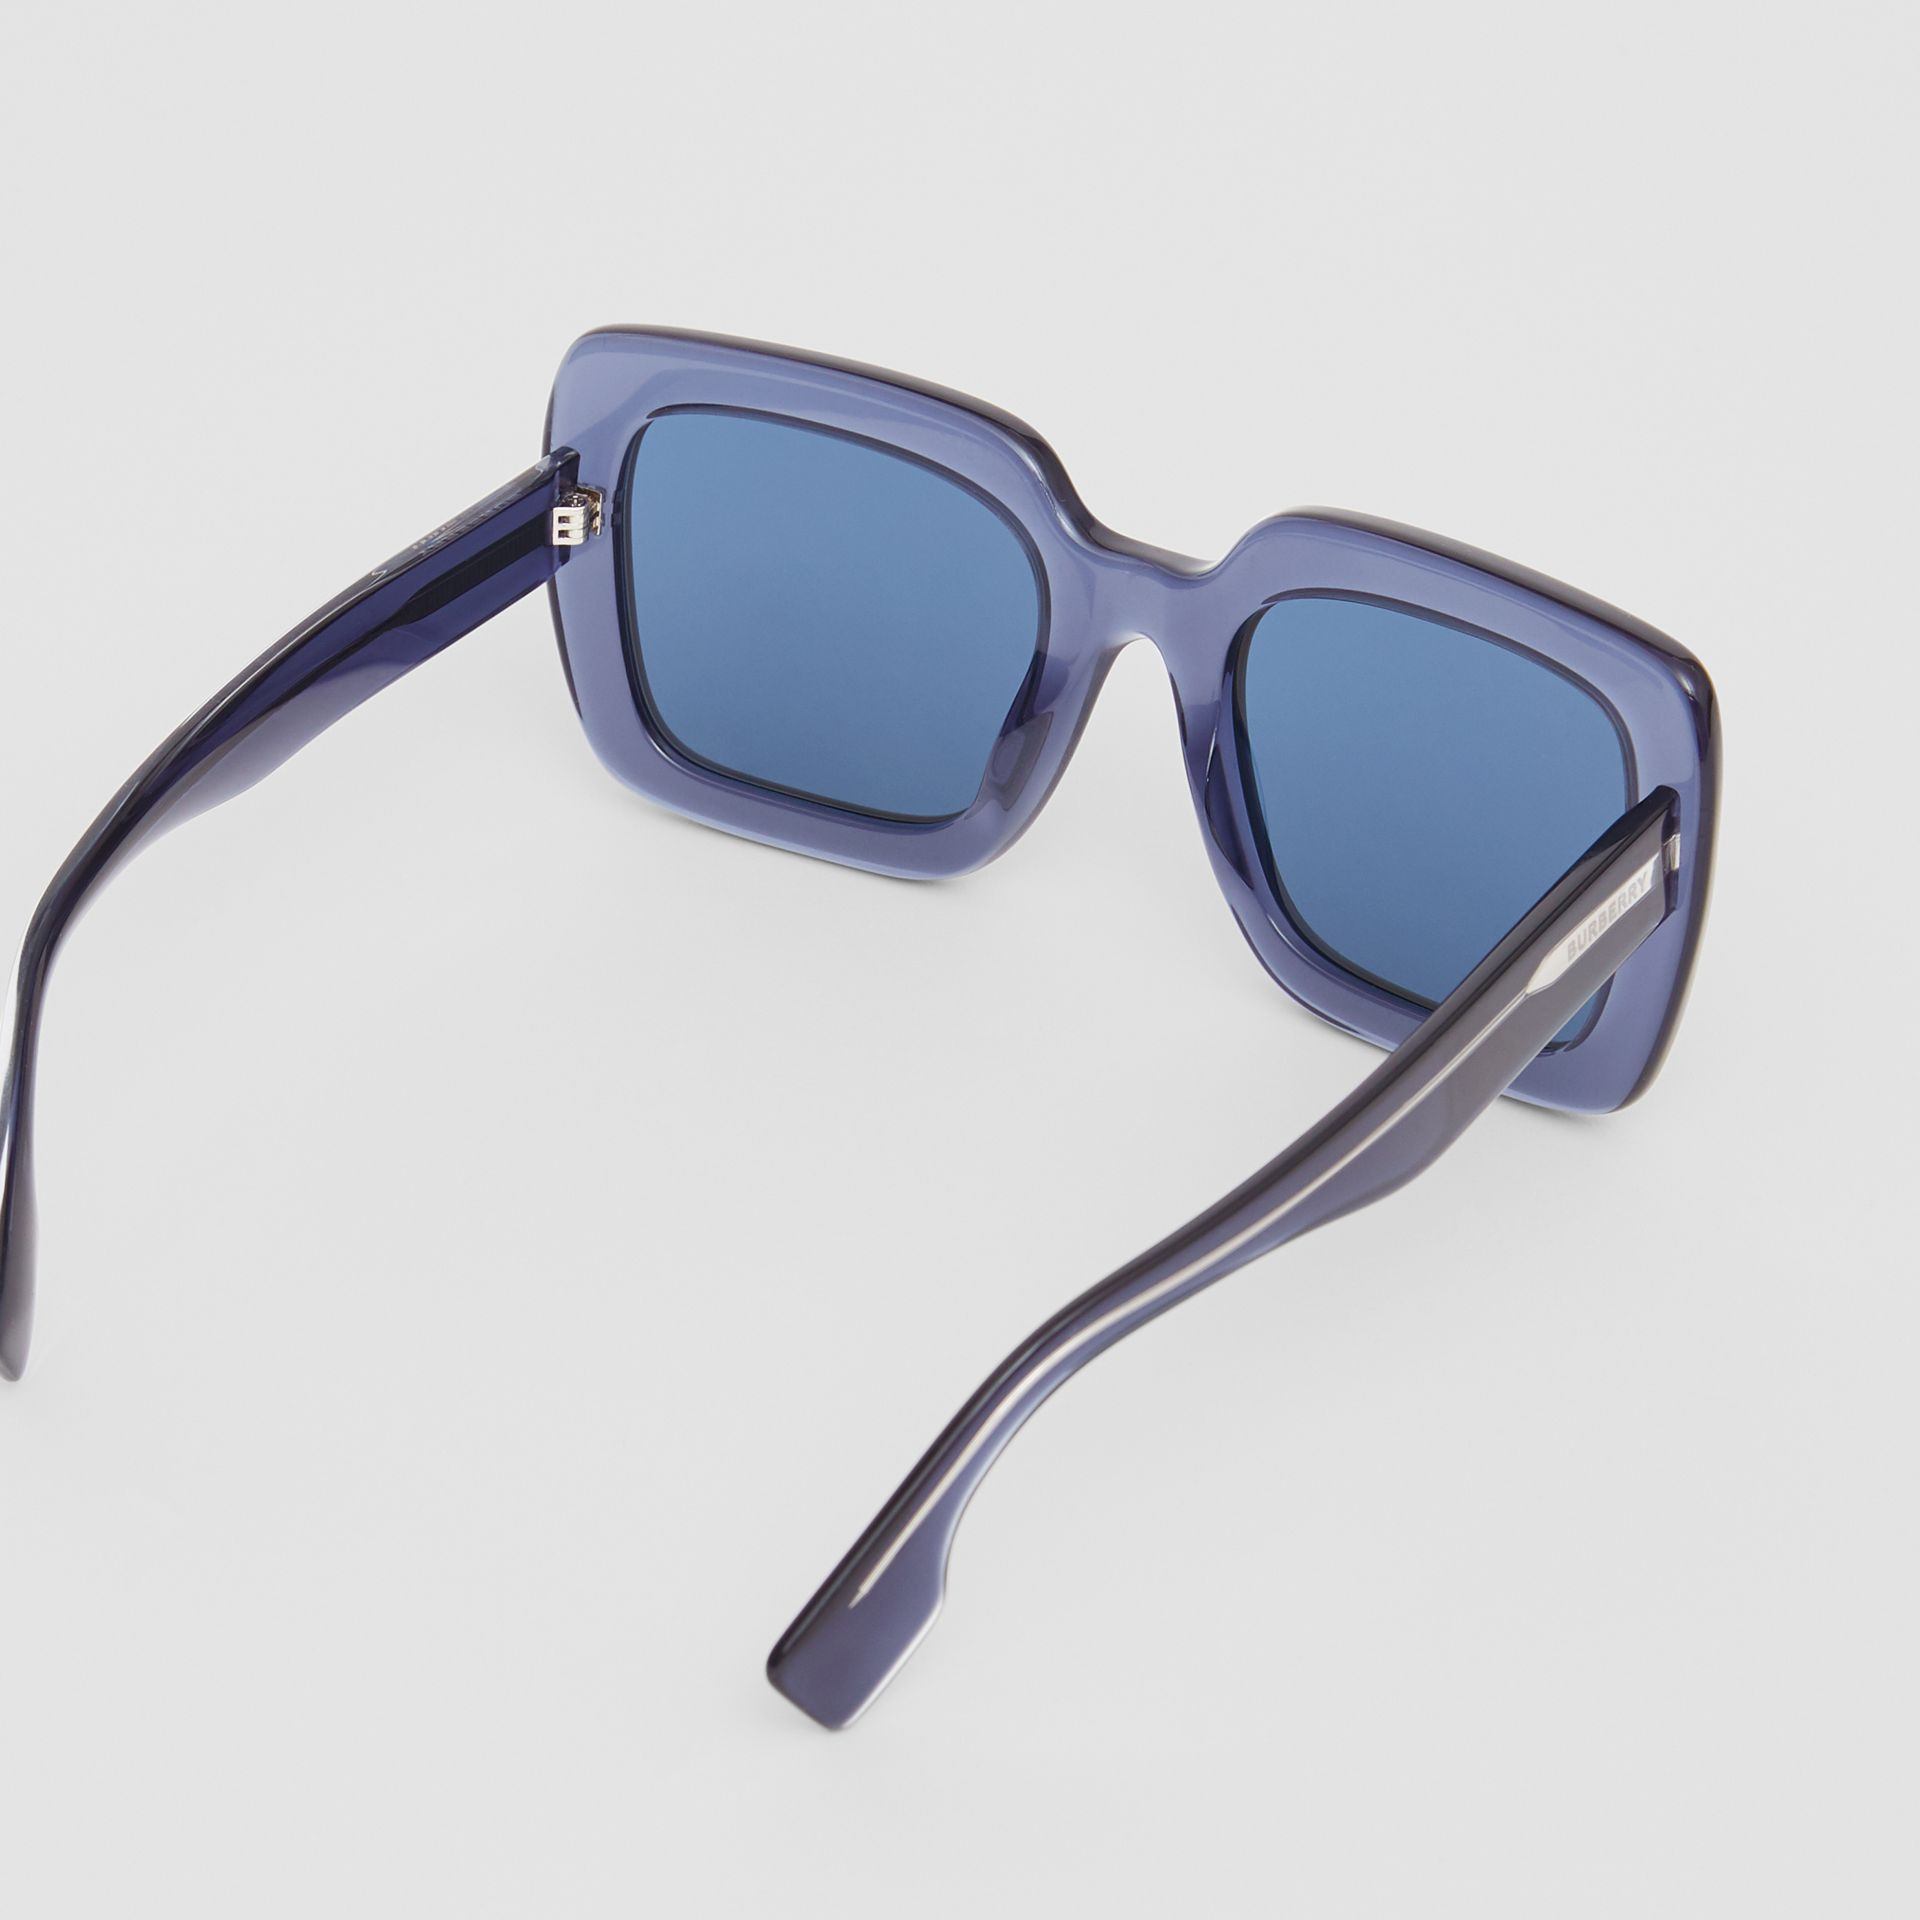 Oversized Square Frame Sunglasses in Blue - Women | Burberry - gallery image 3